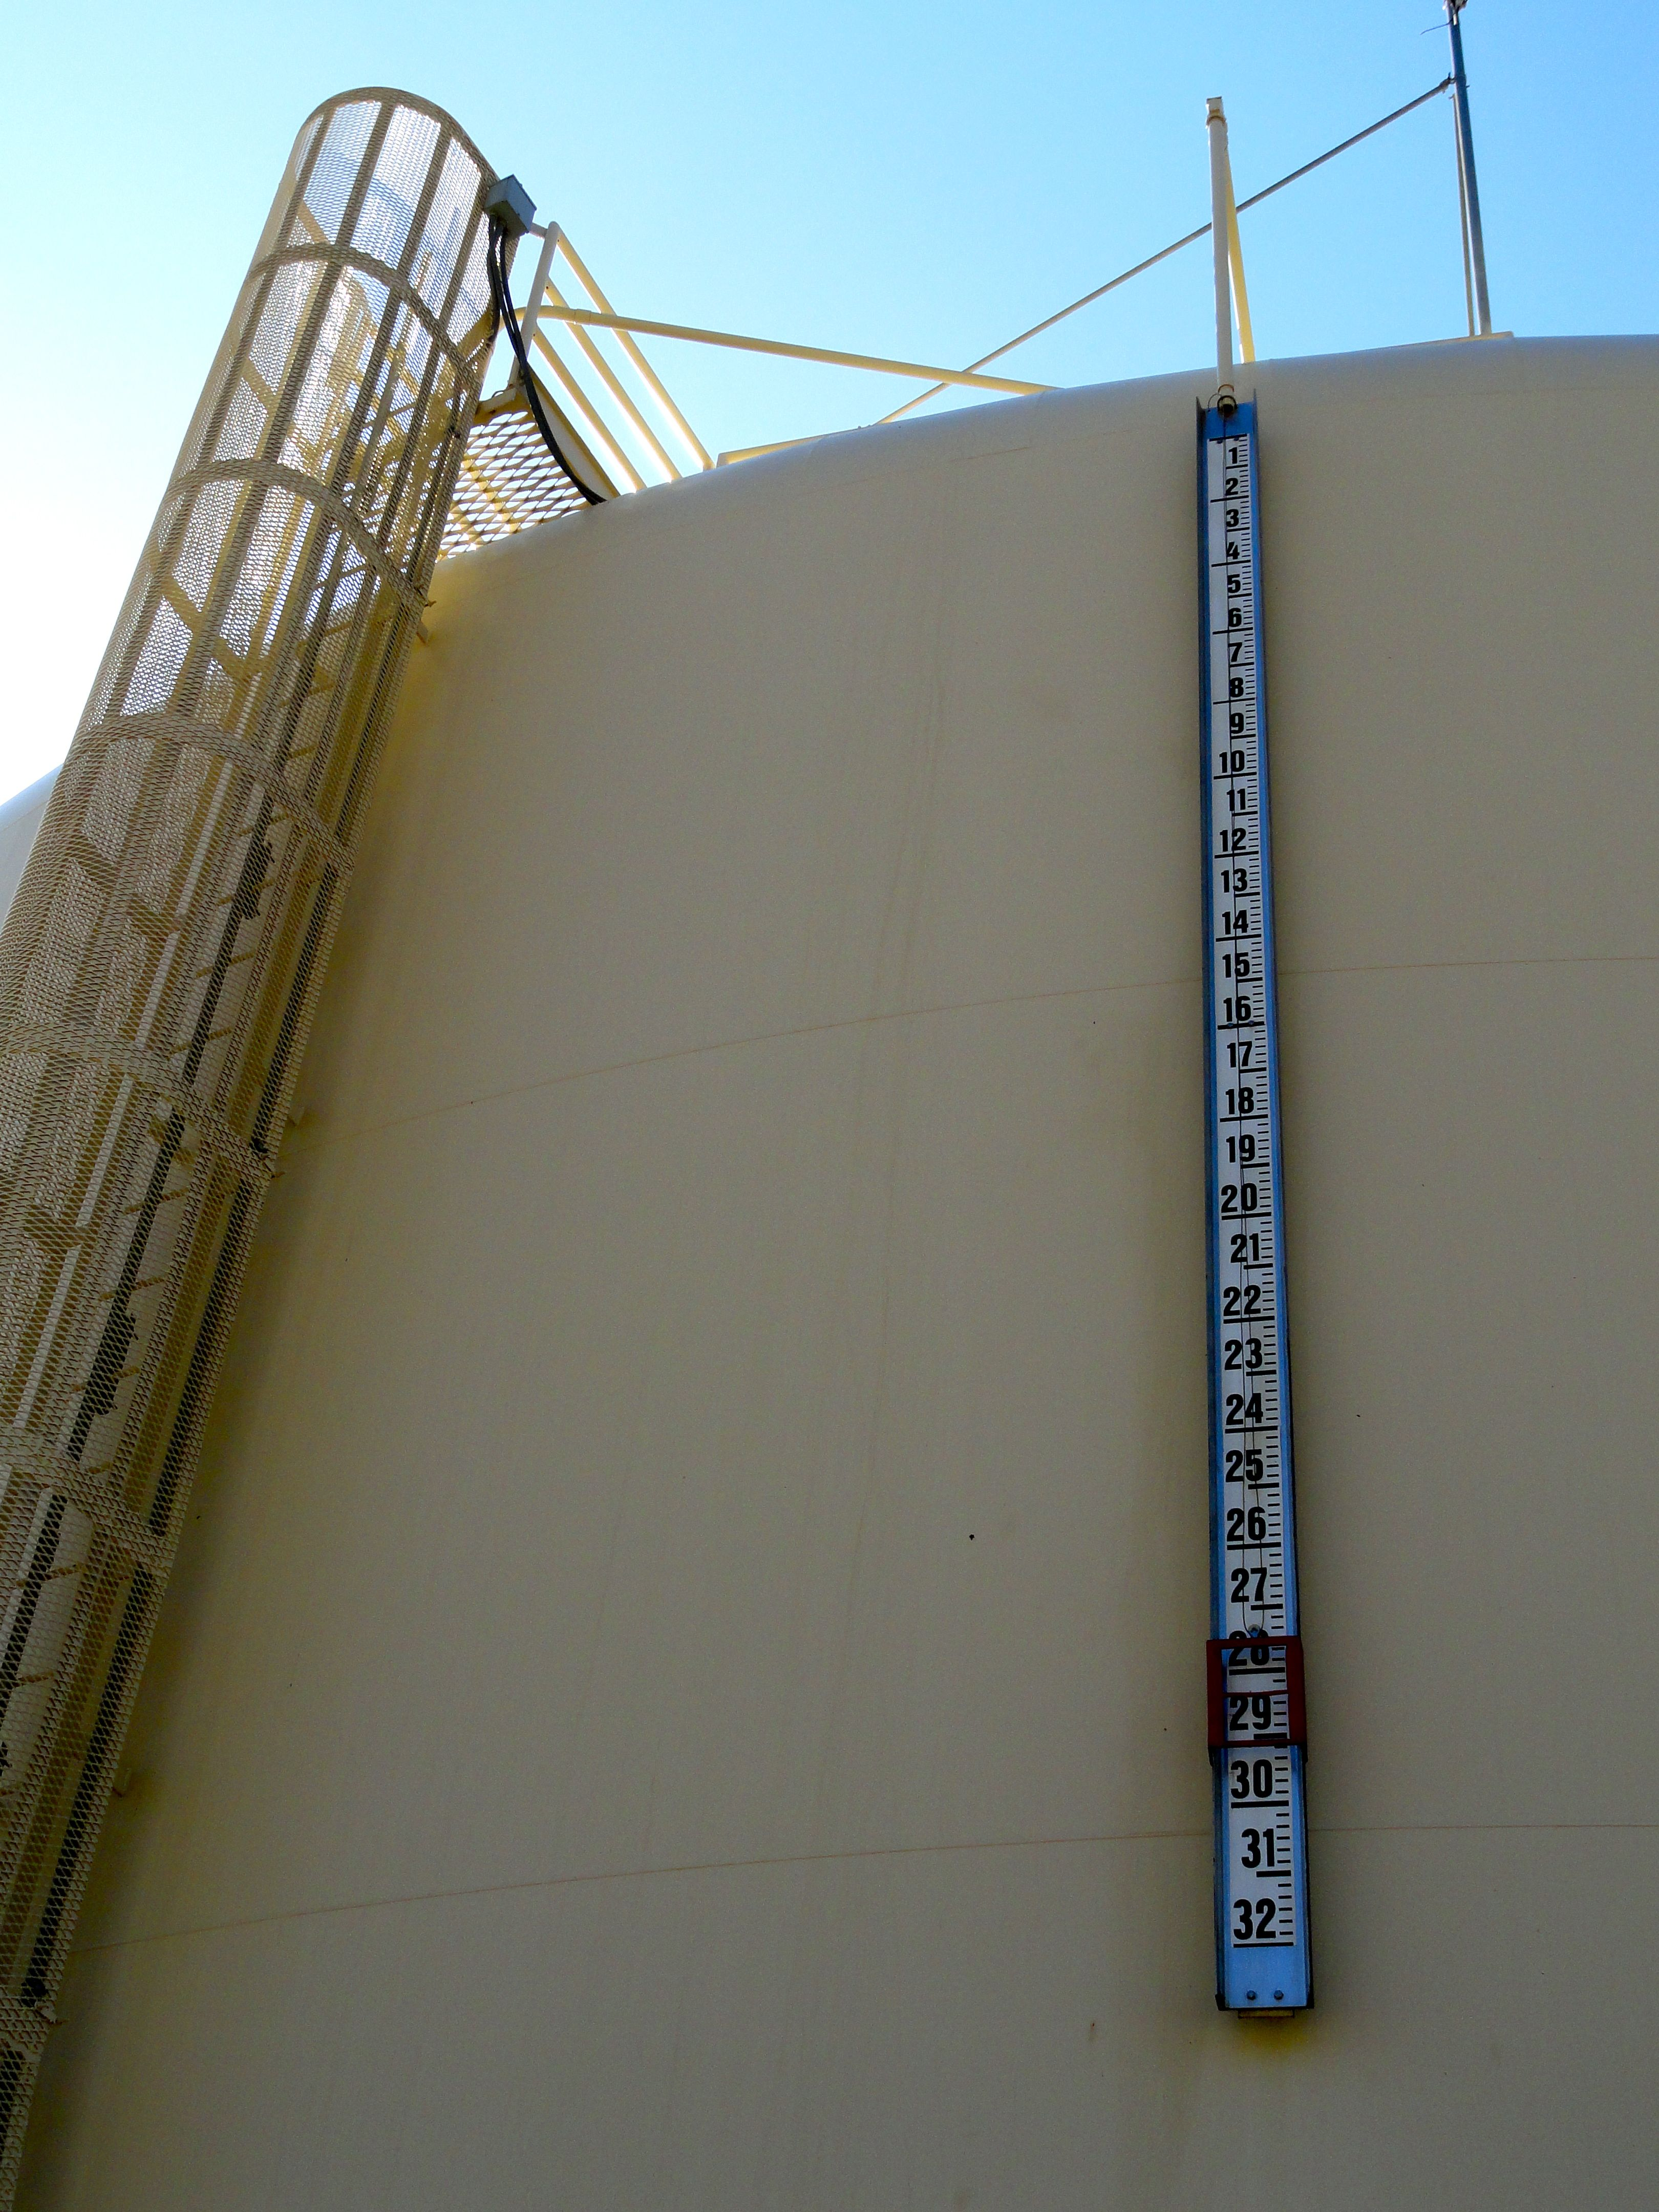 A gauge on a Kerman water tank shows the tank is nearly full.